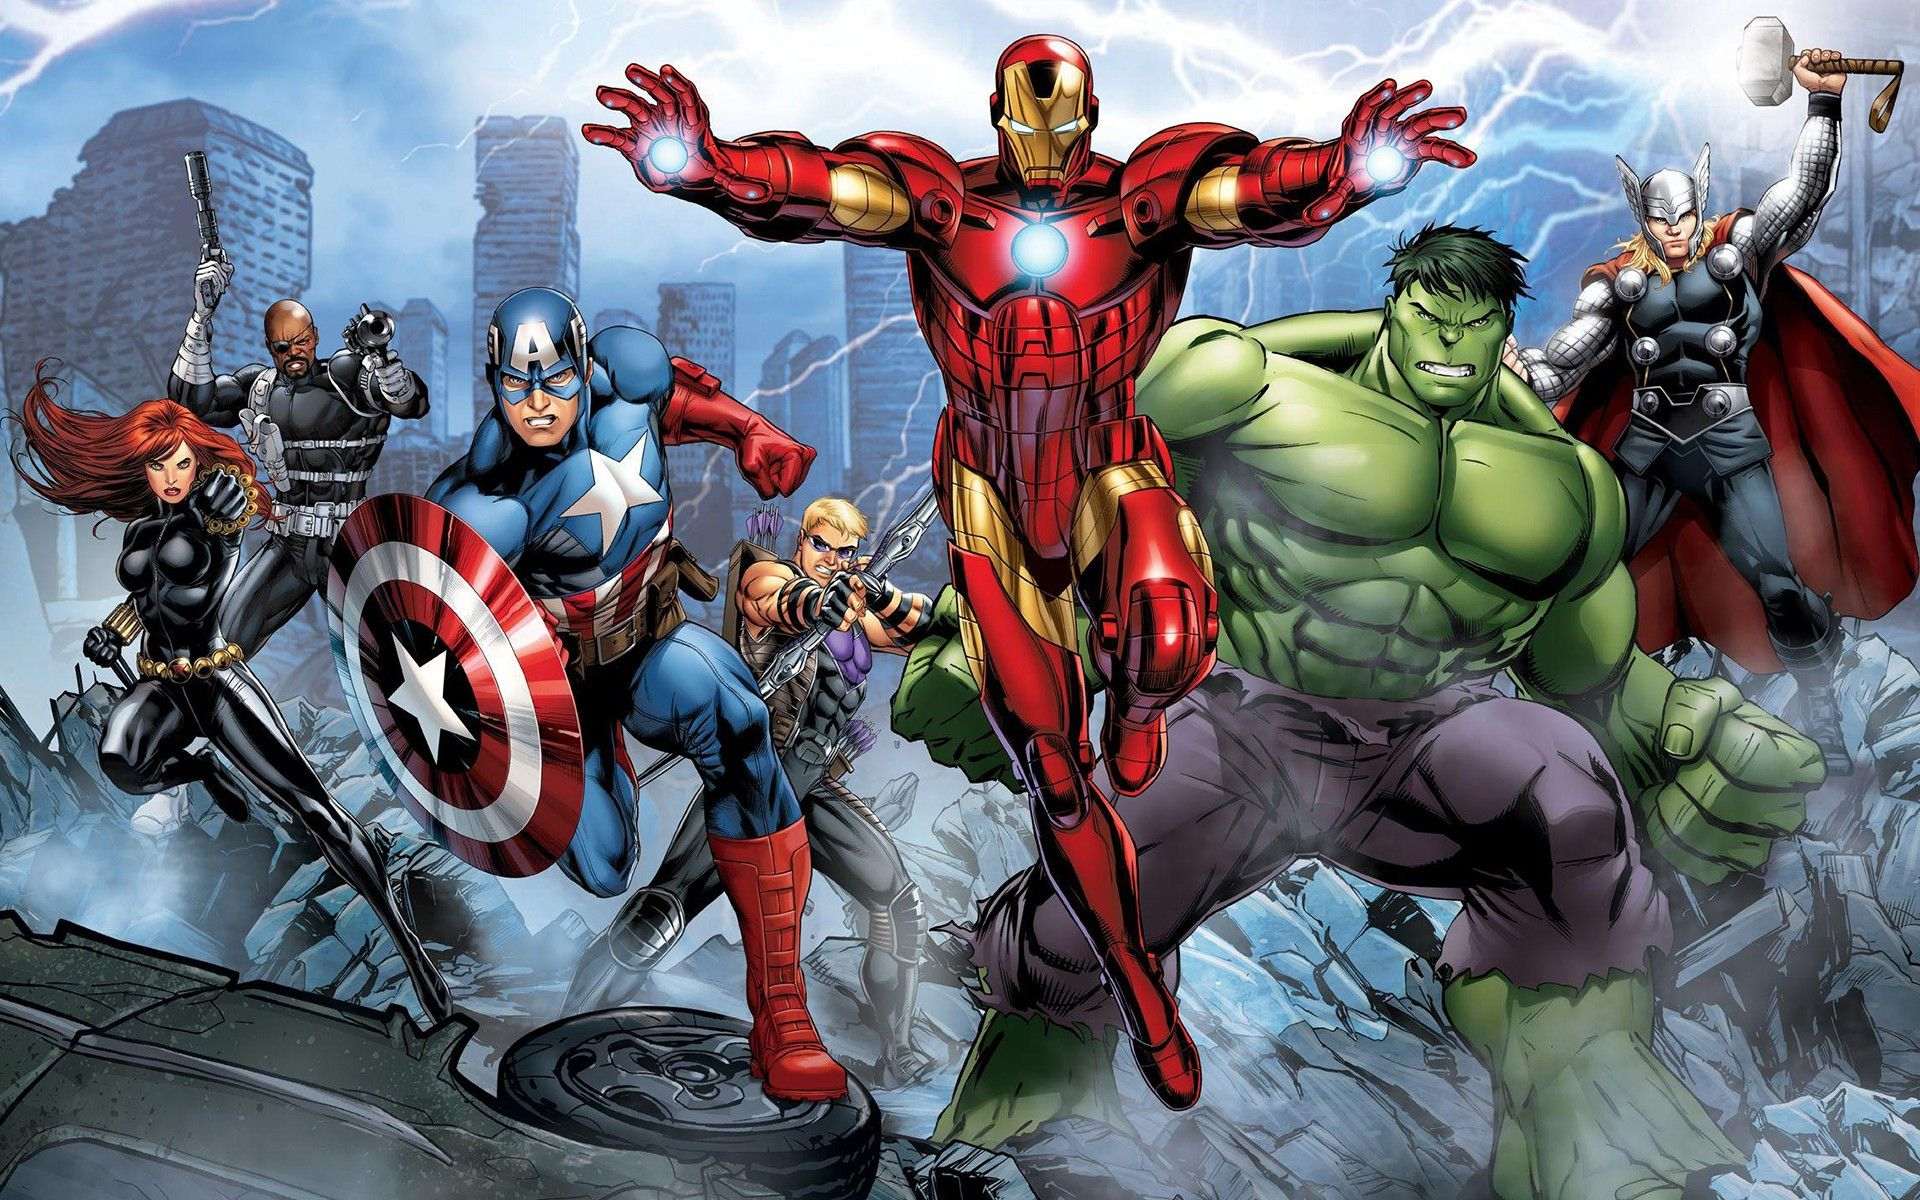 Download Hd Wallpapers Of 164811 The Avengers Iron Man Hulk Hawkeye Thor Captain America Nick Avengers Cartoon Marvel Comics Wallpaper Avengers Pictures